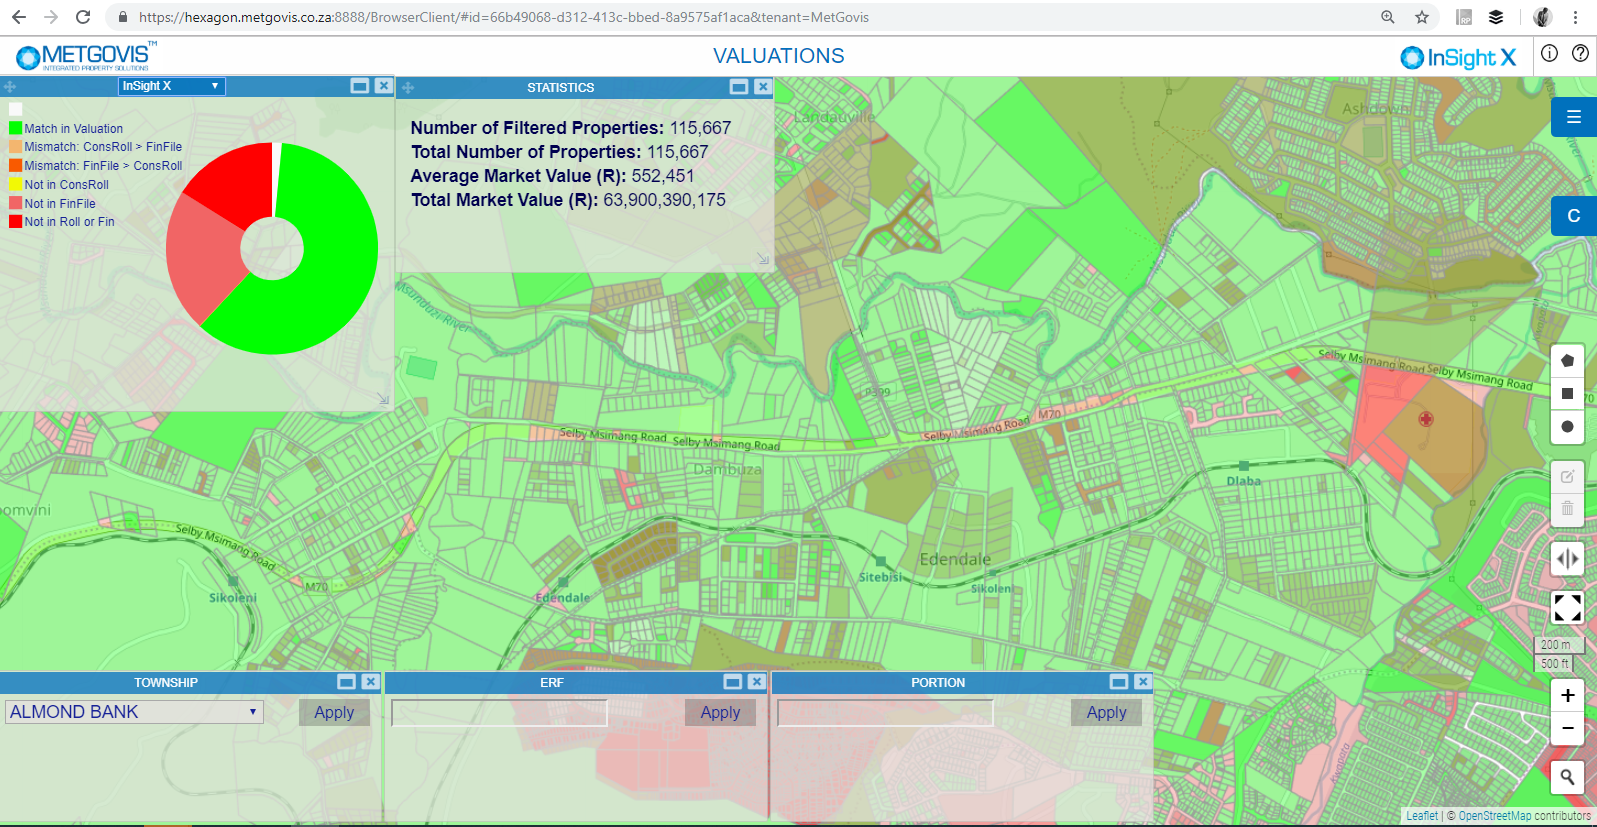 Fig. 4: Overview of the project progress of a general valuation project, highlighting the state of each property.